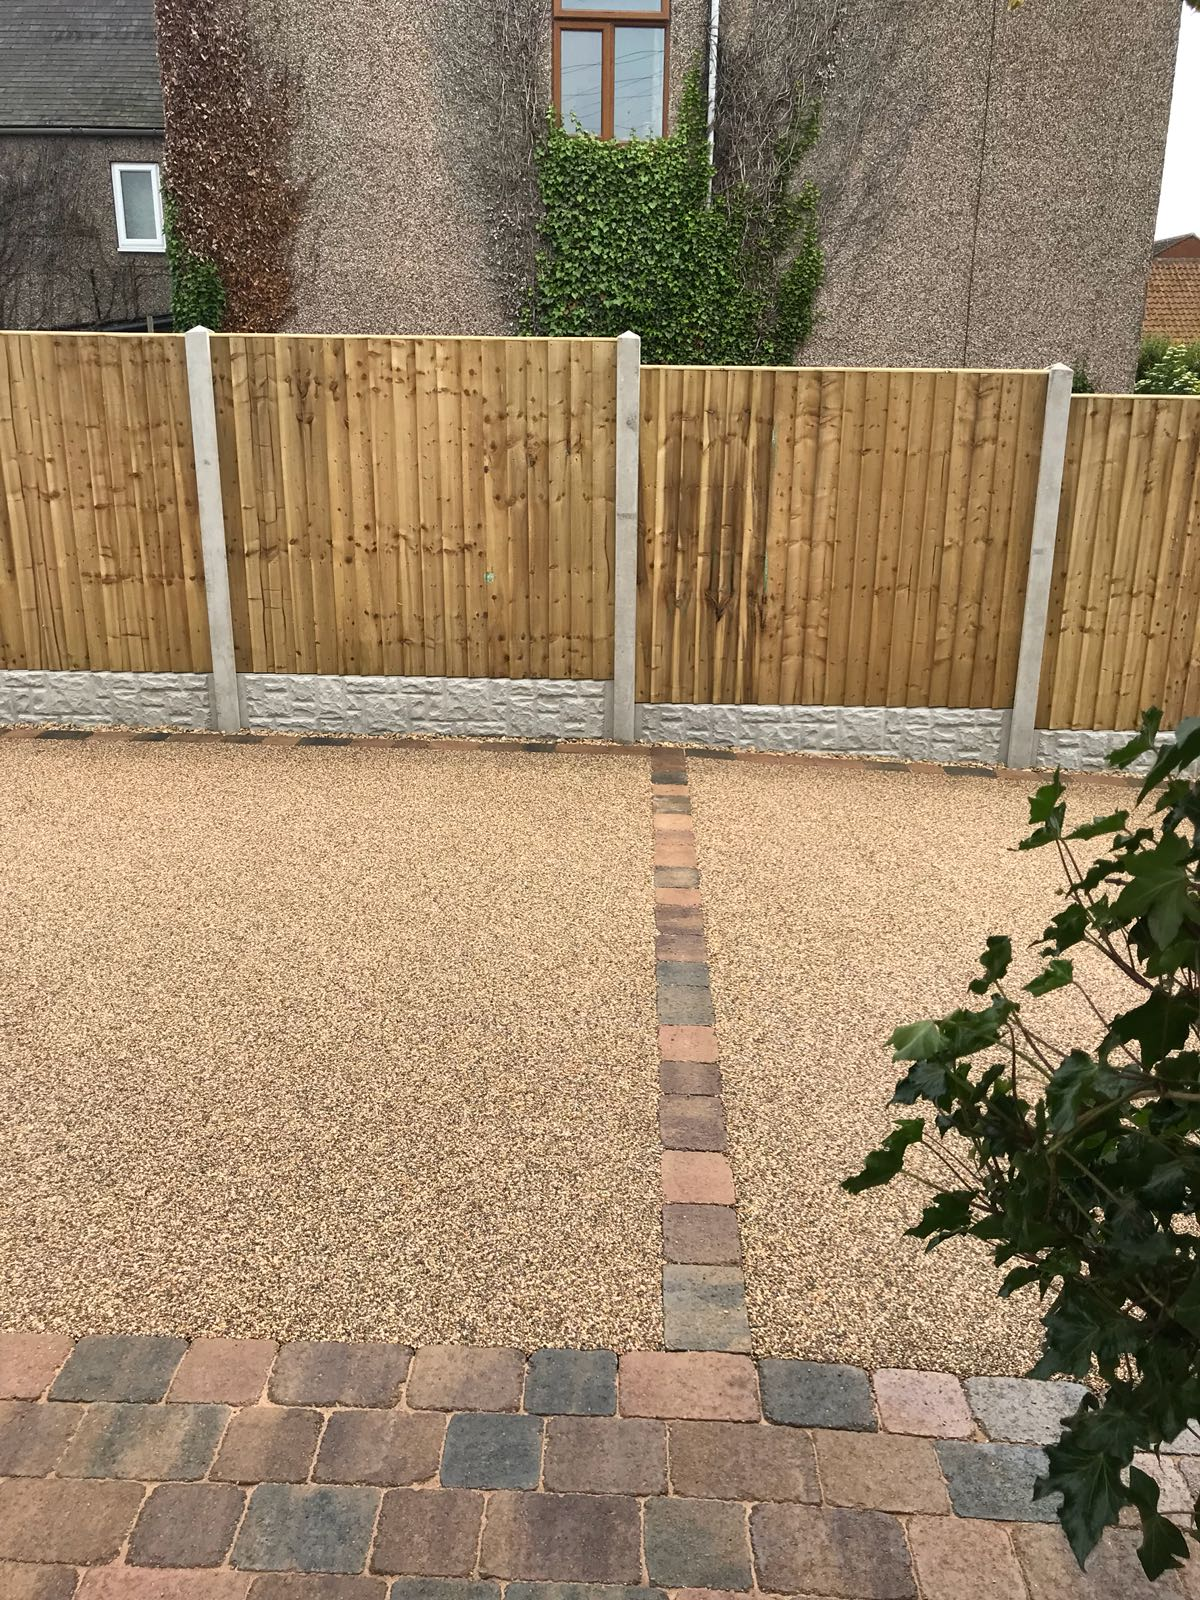 Fencing project for garden